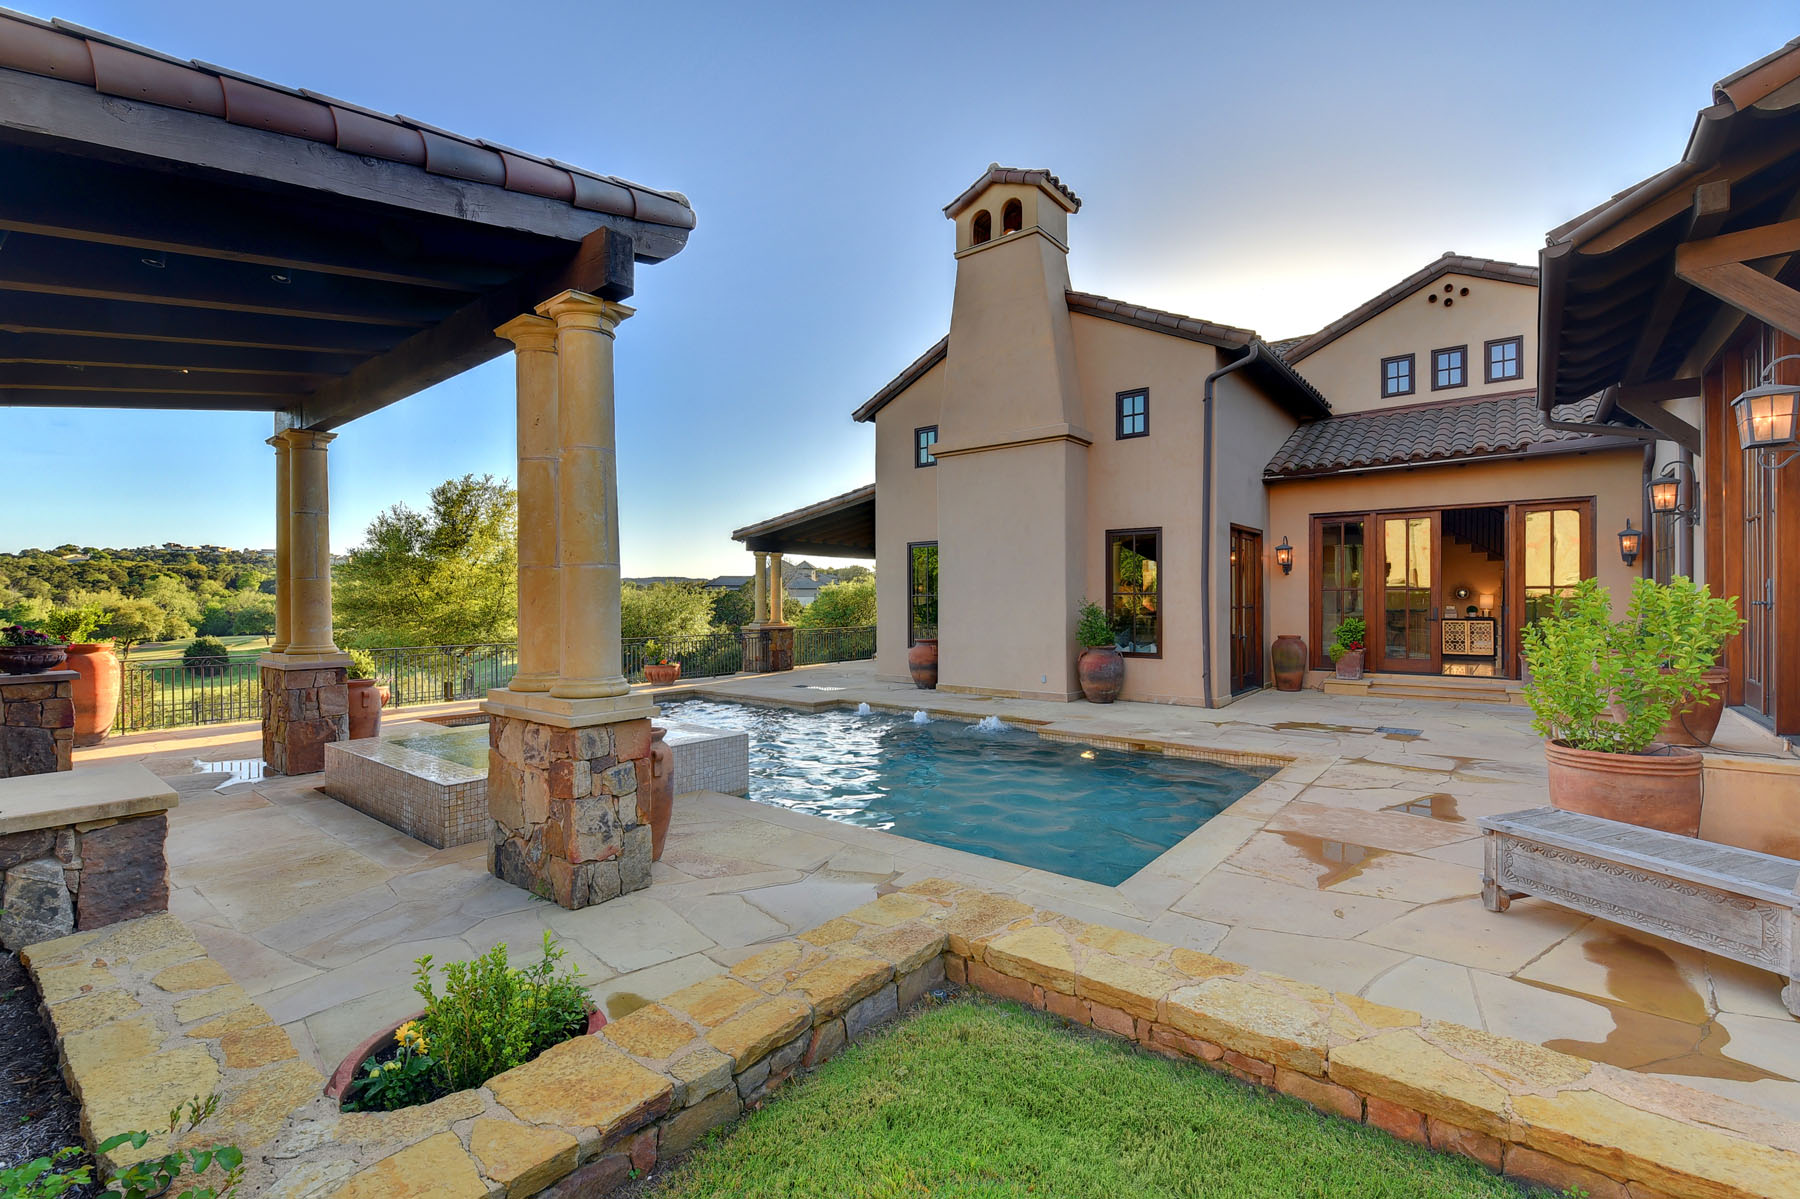 Single Family Home for Sale at Old World Elegance 8533 Calera Dr Barton Creek, Austin, Texas, 78735 United States